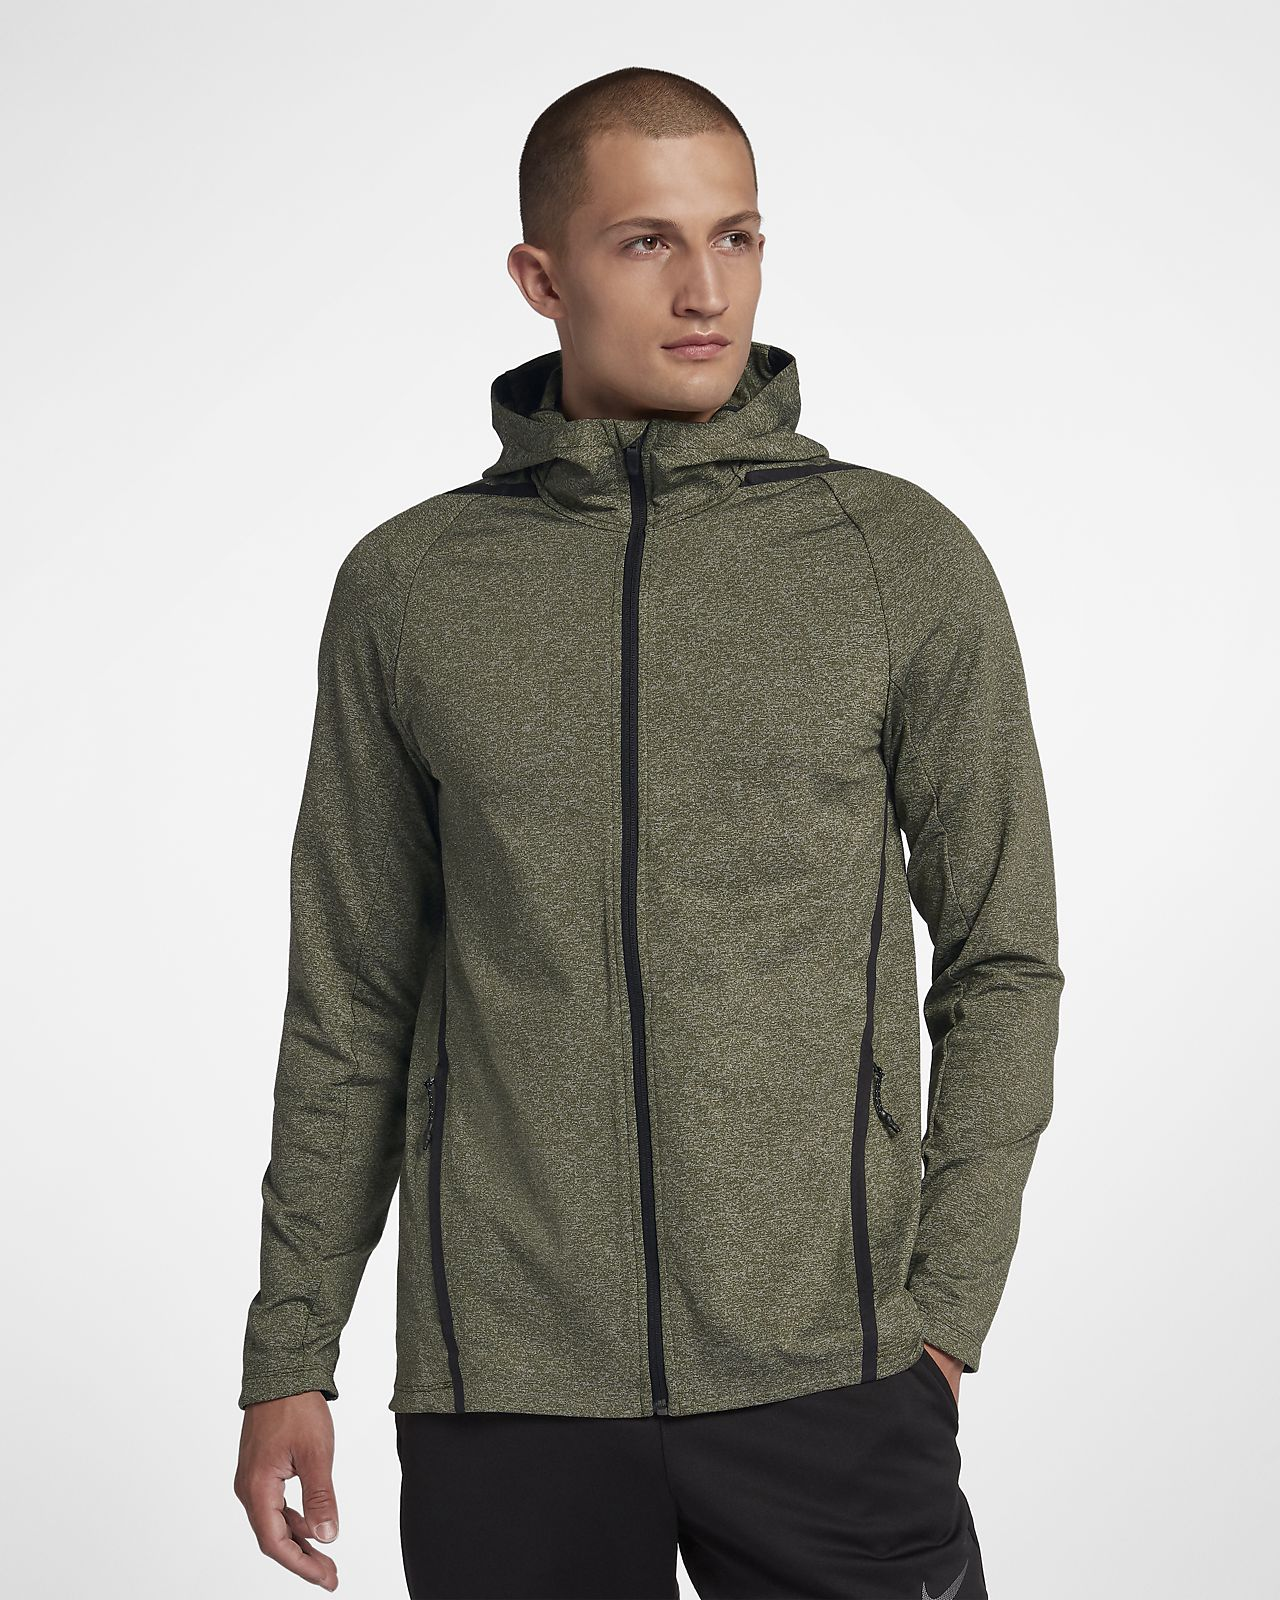 Nike Dri-FIT Men's Long-Sleeve Full-Zip Training Hoodie